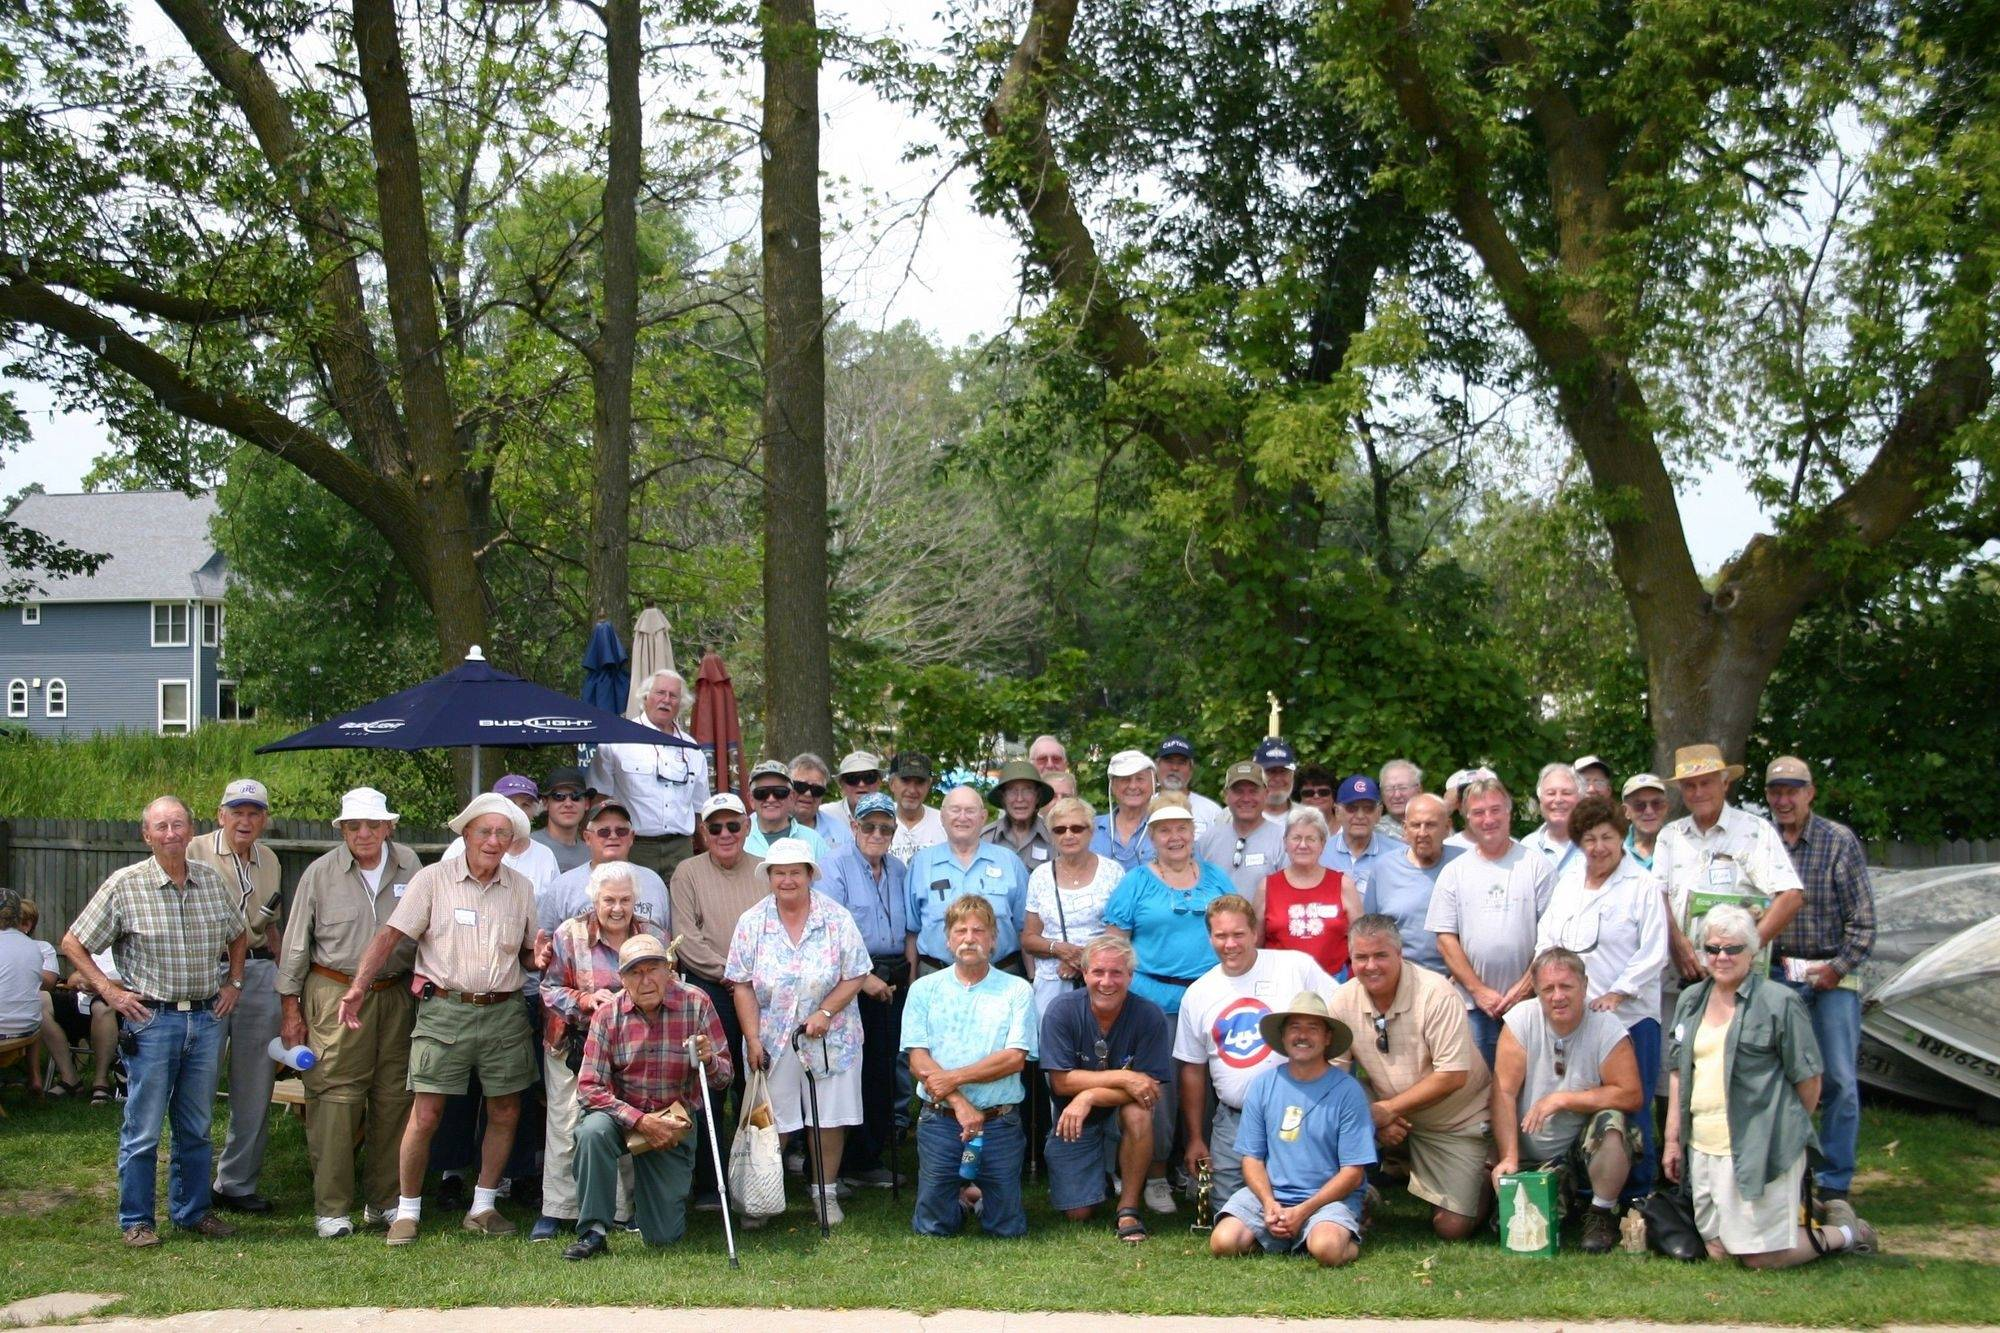 A group of 42 seniors and volunteer captains participated in the 11th annual Bob Lindstrom Memorial Fishing Derby held Aug. 7, at Bangs Lake in Wauconda.